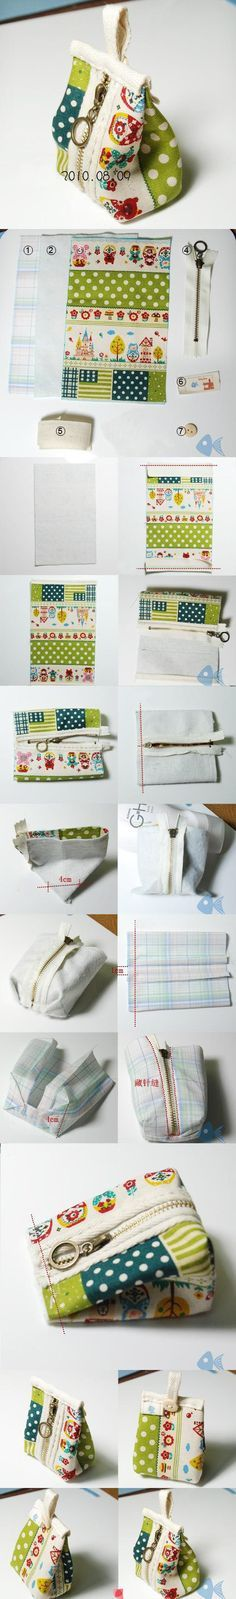 Tutorial photos only DIY Small HandbagDIY Small Bag, longer handle to convert to wristlet?Cute little bag…How to Make Stylish Fabric Handmade bags - Simple Craft Handmade Bags You'll Fall in Love With Sewing Hacks, Sewing Tutorials, Sewing Patterns, Free Tutorials, Craft Tutorials, Fabric Crafts, Sewing Crafts, Sewing Projects, Diy Projects